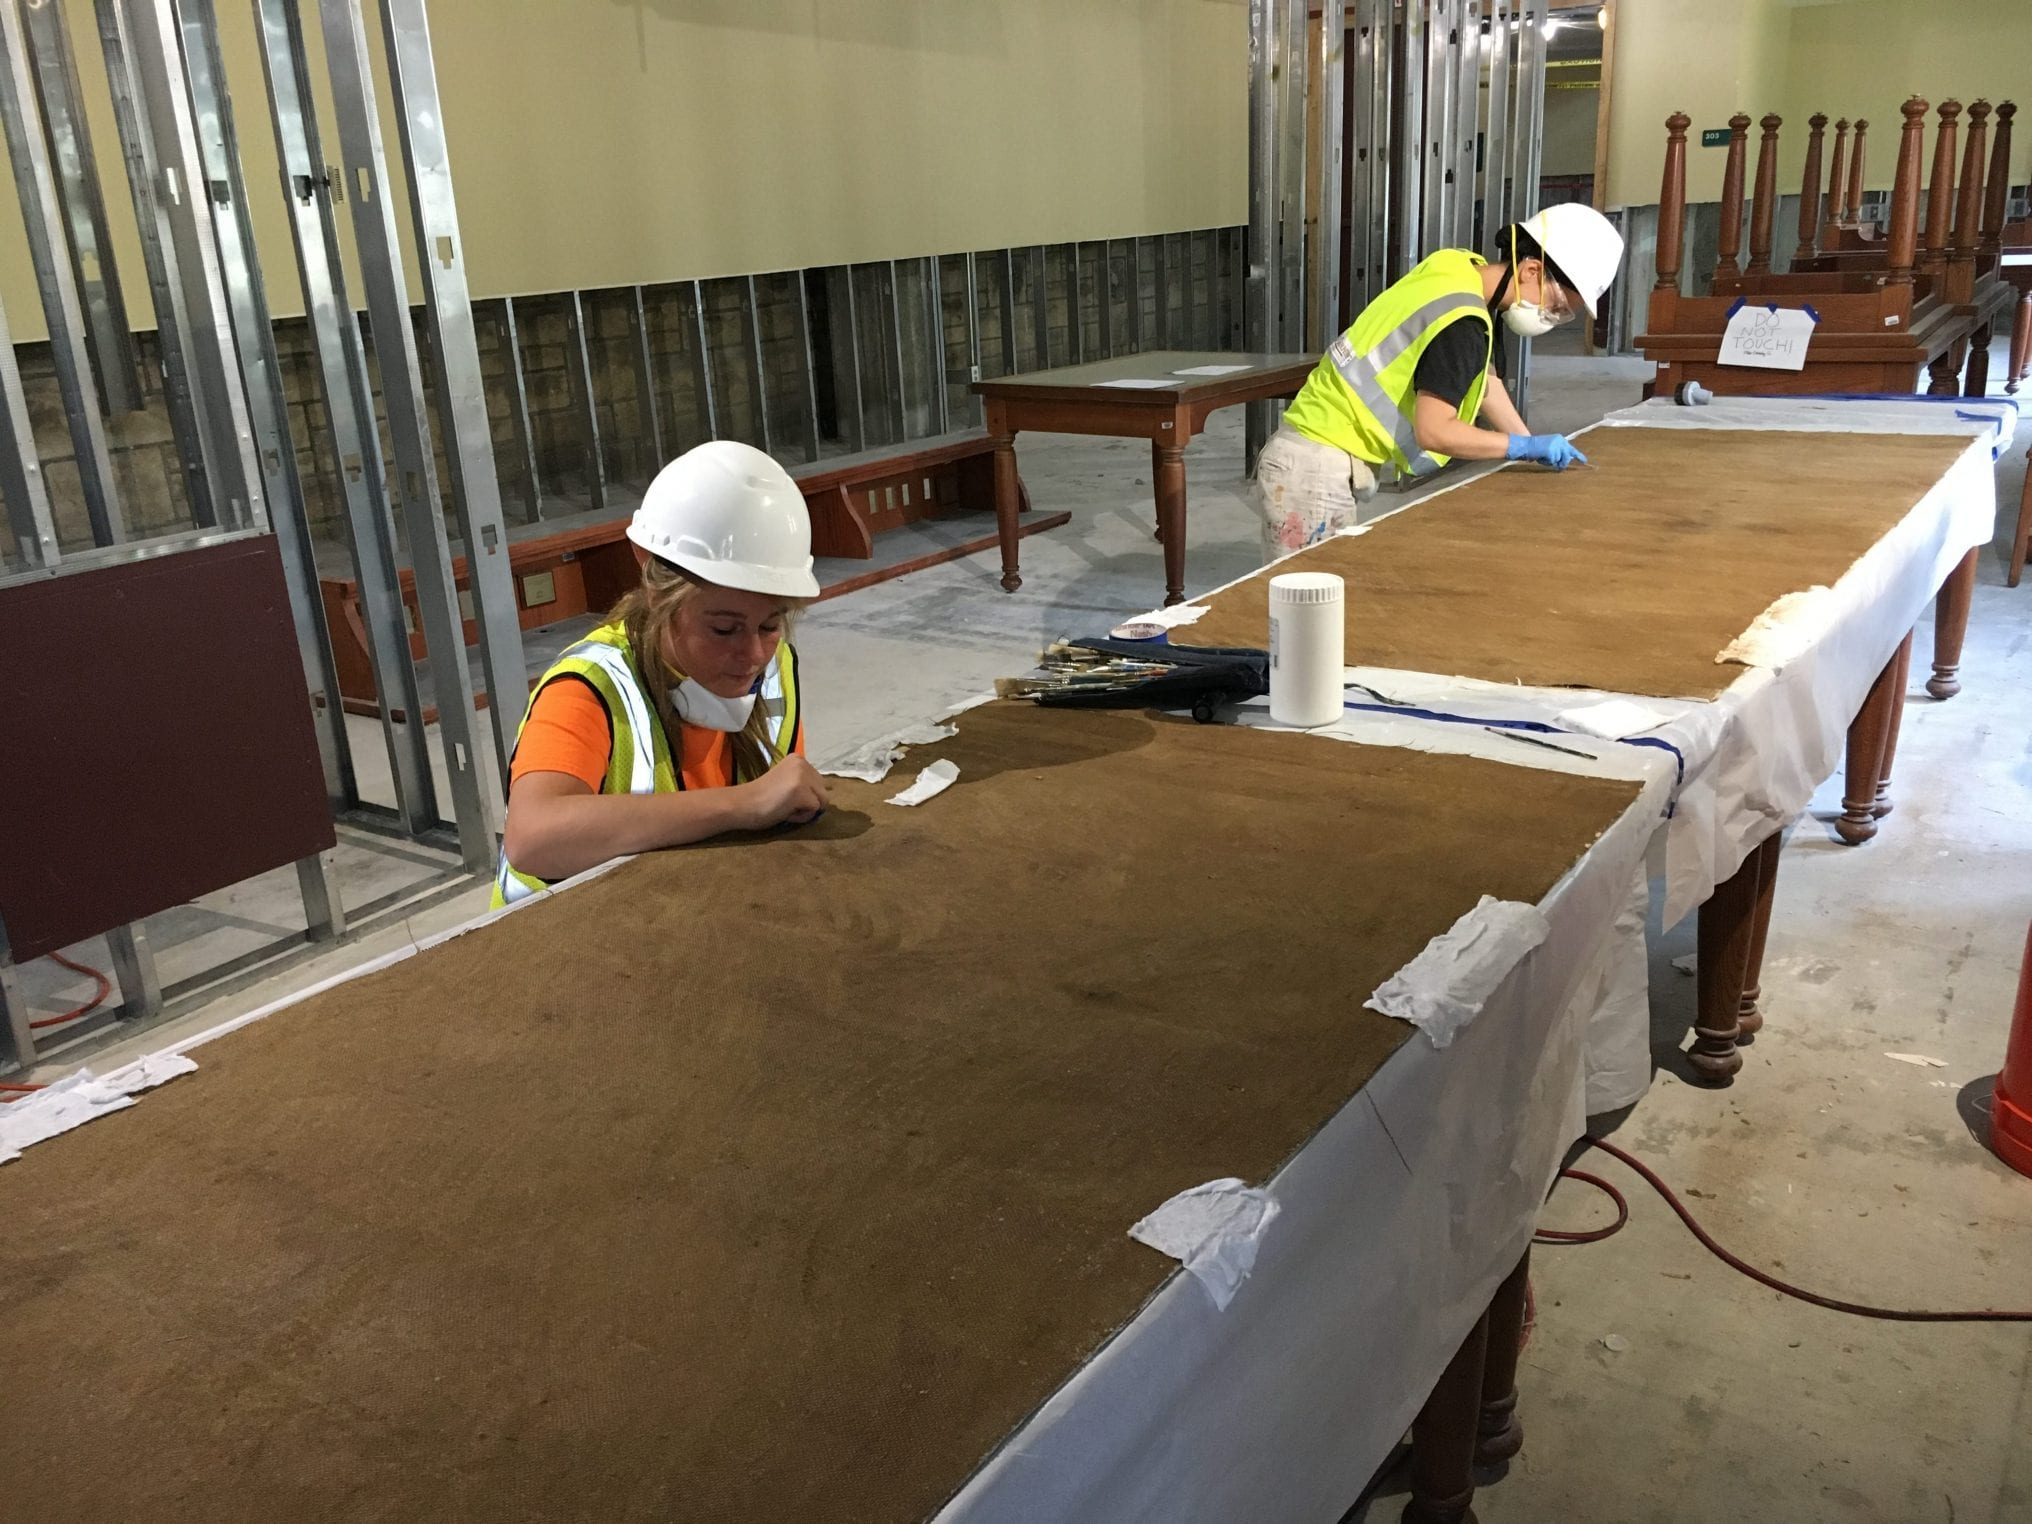 Two women wearing white hard hats and yellow construction vests lean over large brown rectangular panels of the murals spread on library tables so they can carefully remove debris.